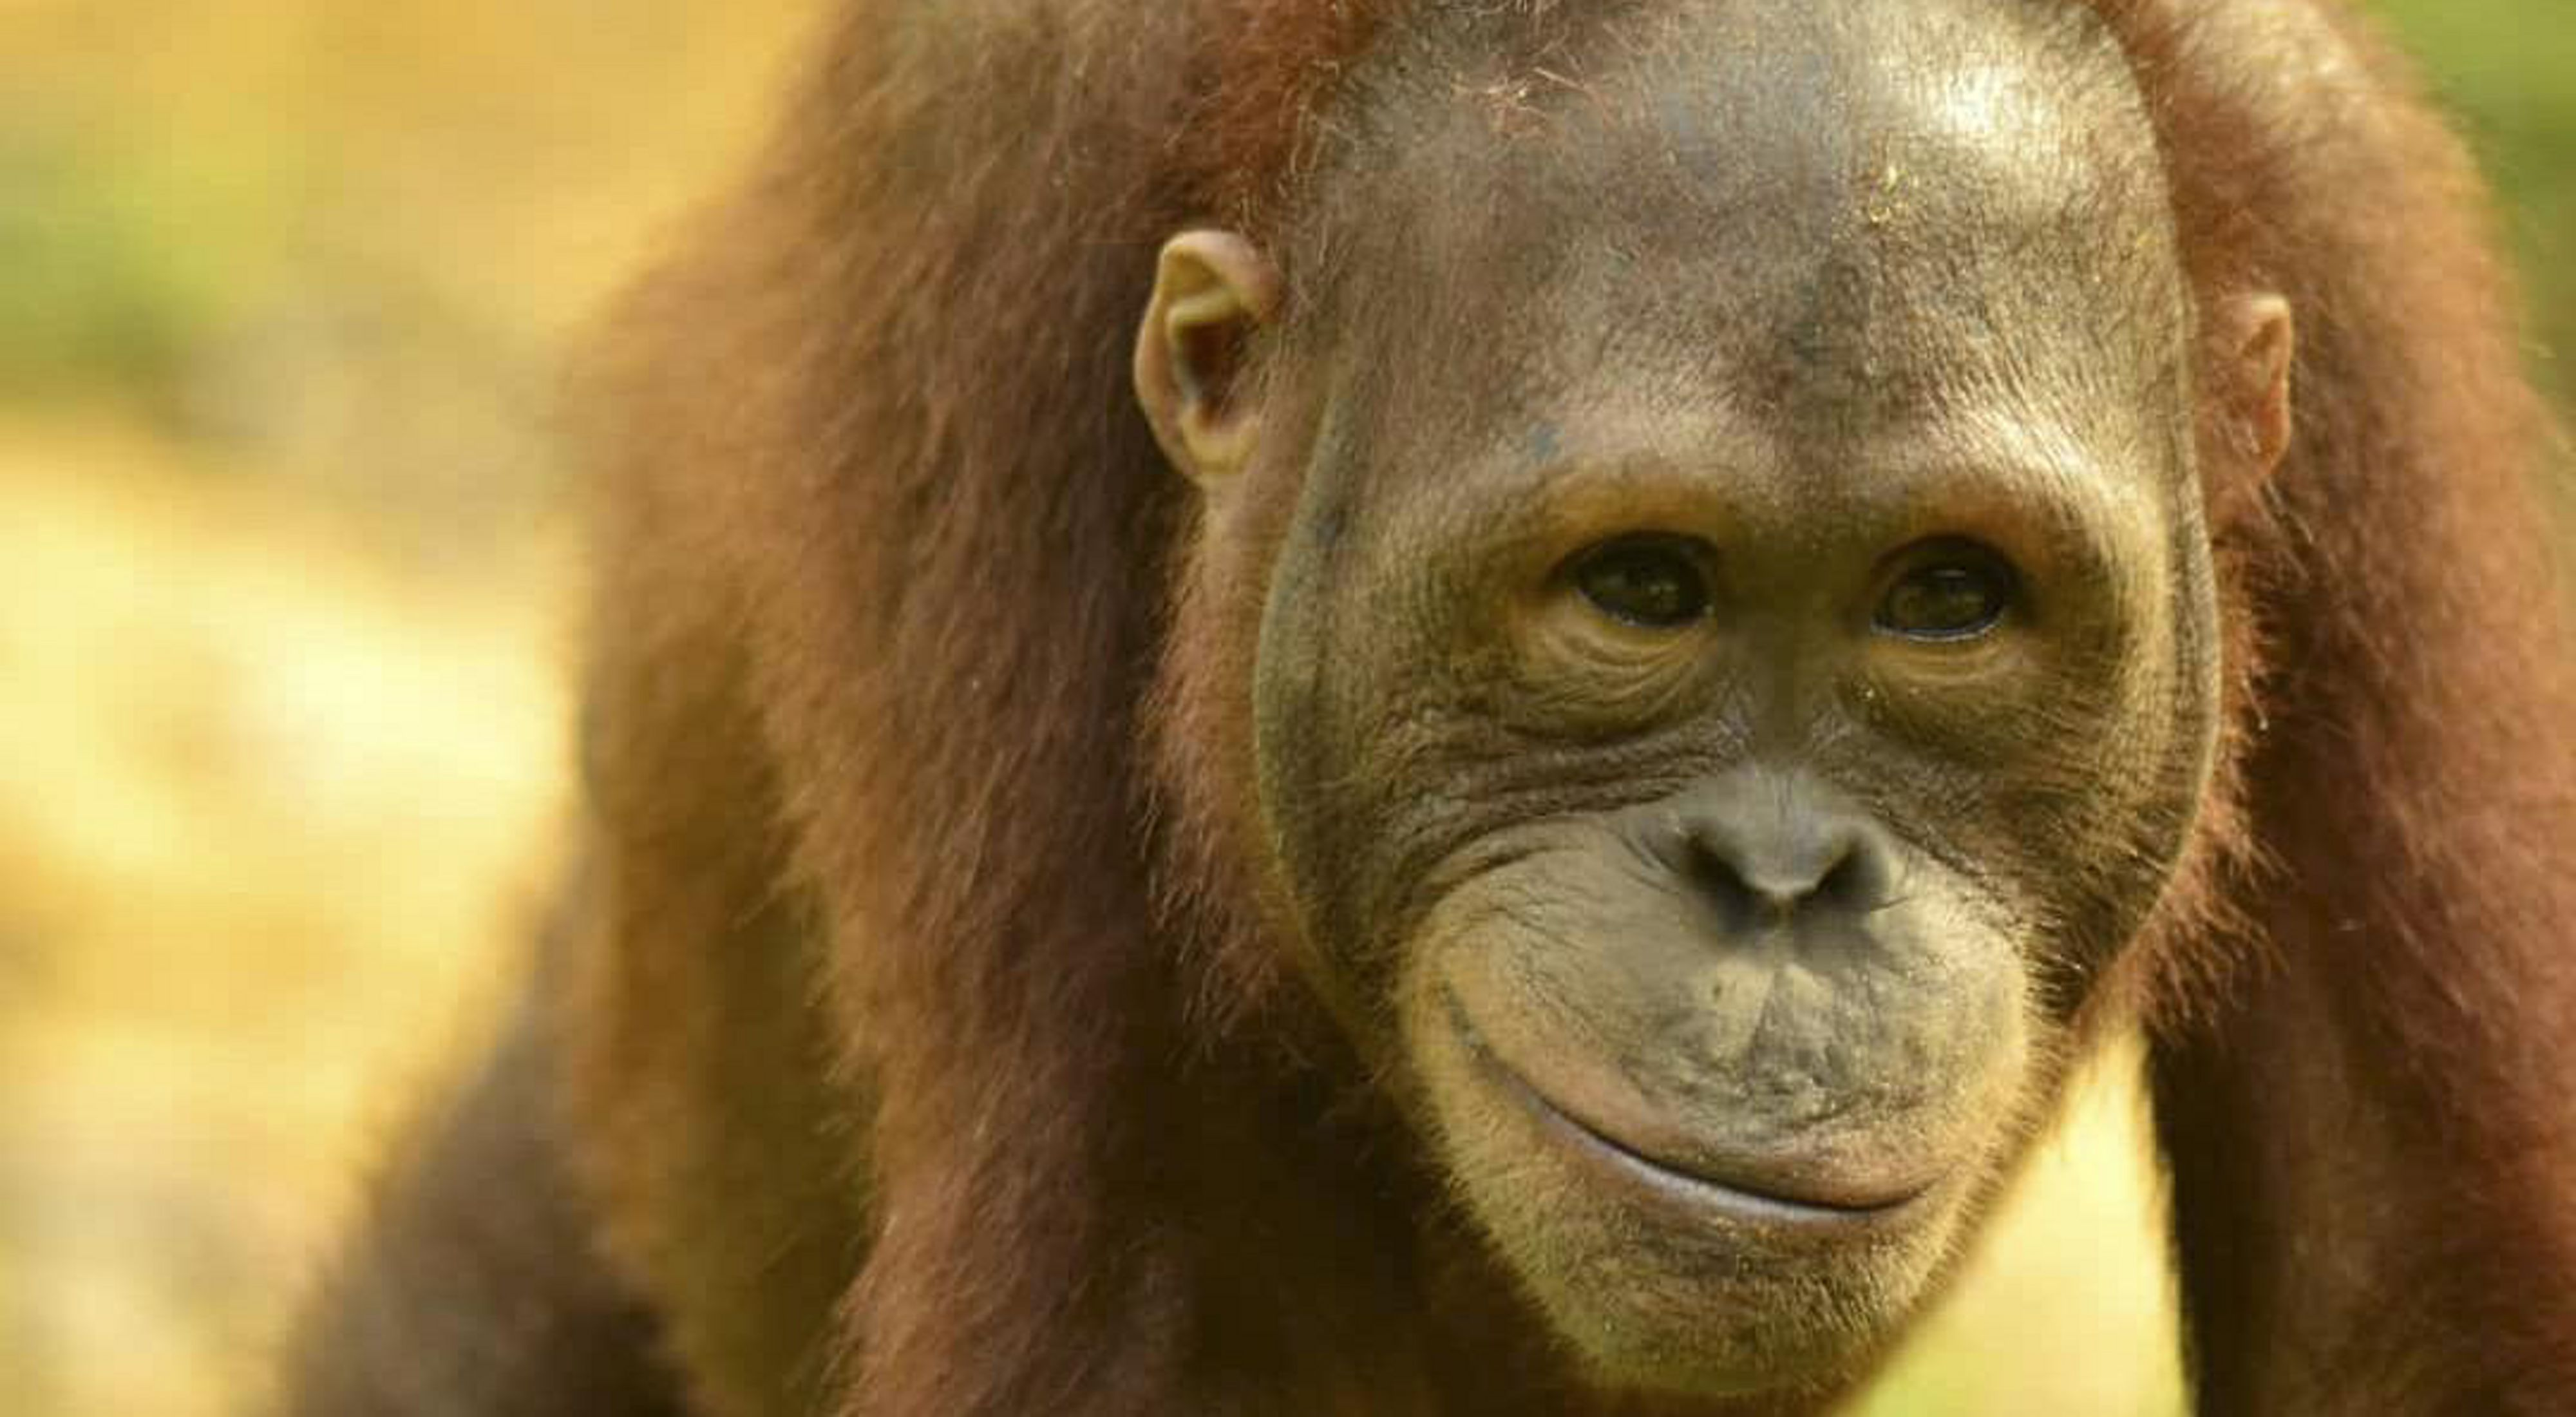 An upclose of an orangutan that appears to be smiling.